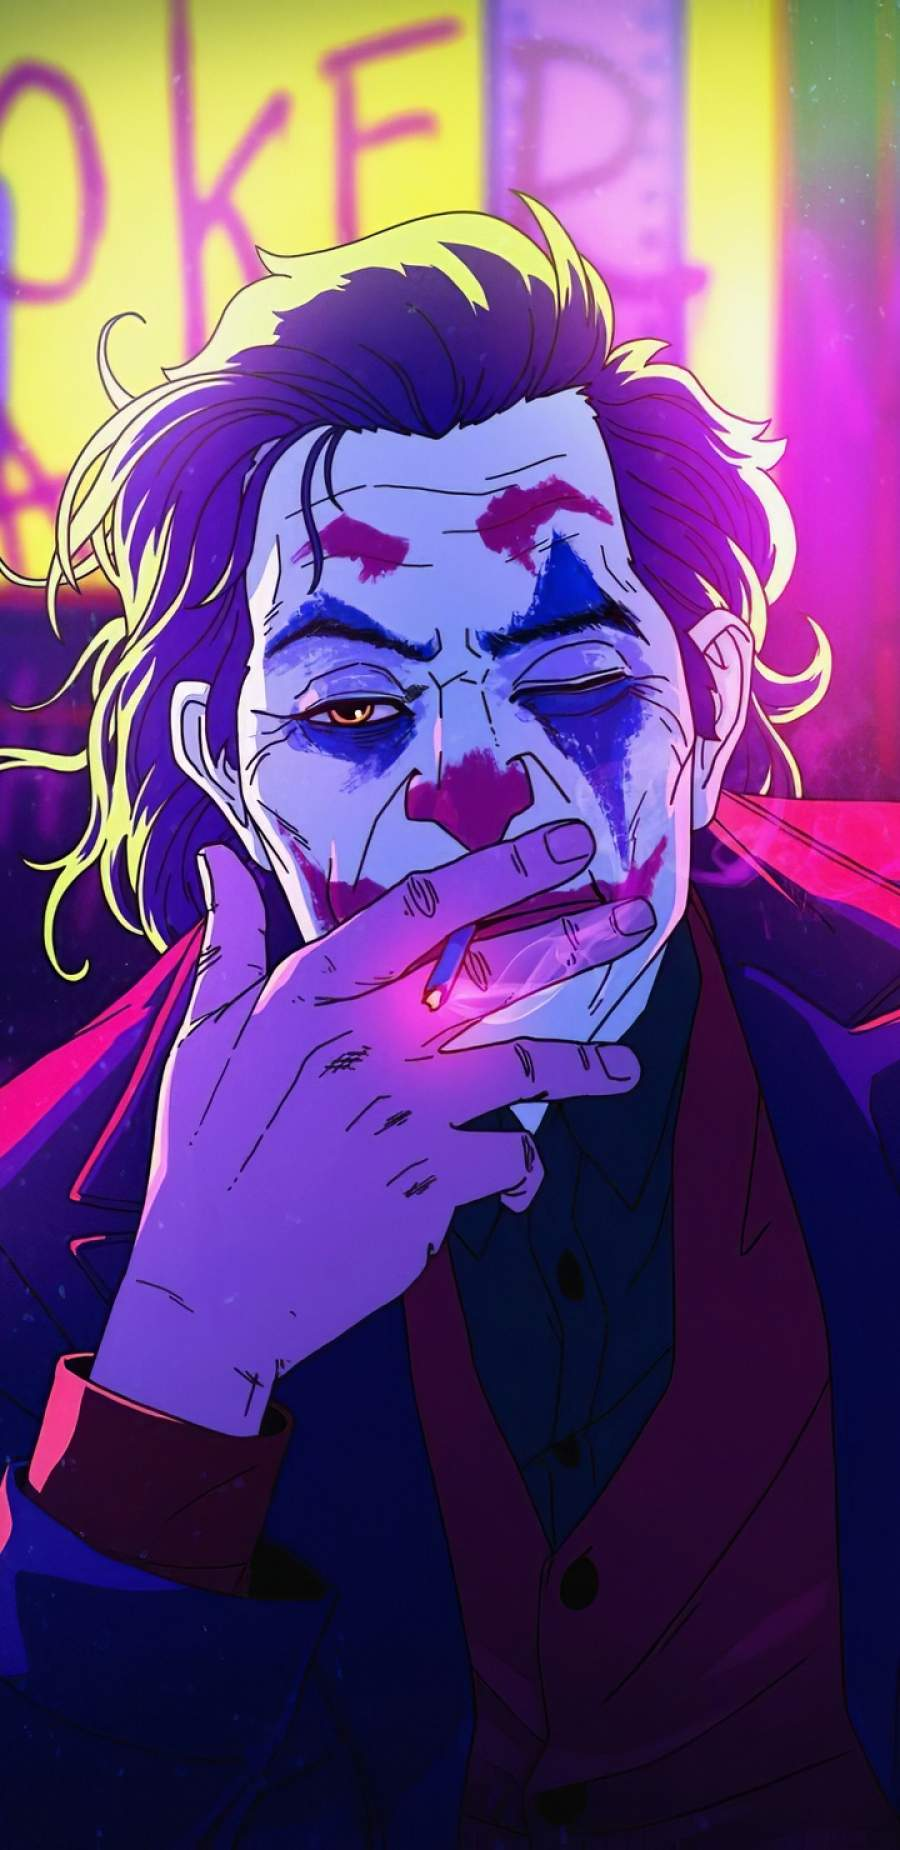 Joker Neonic Art iPhone Wallpaper